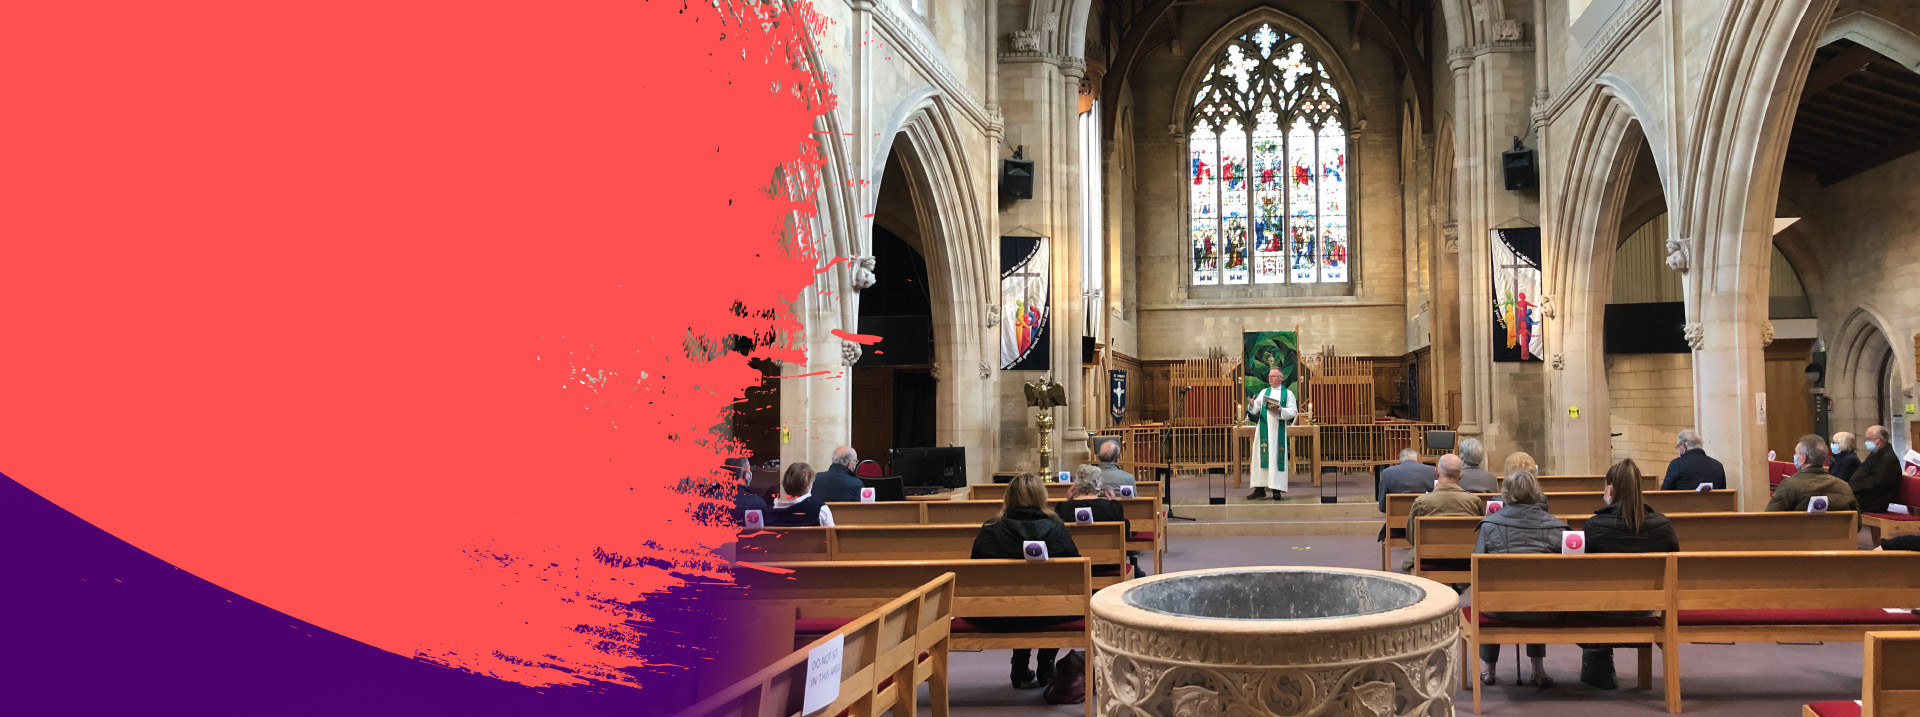 services in st marks harrogate